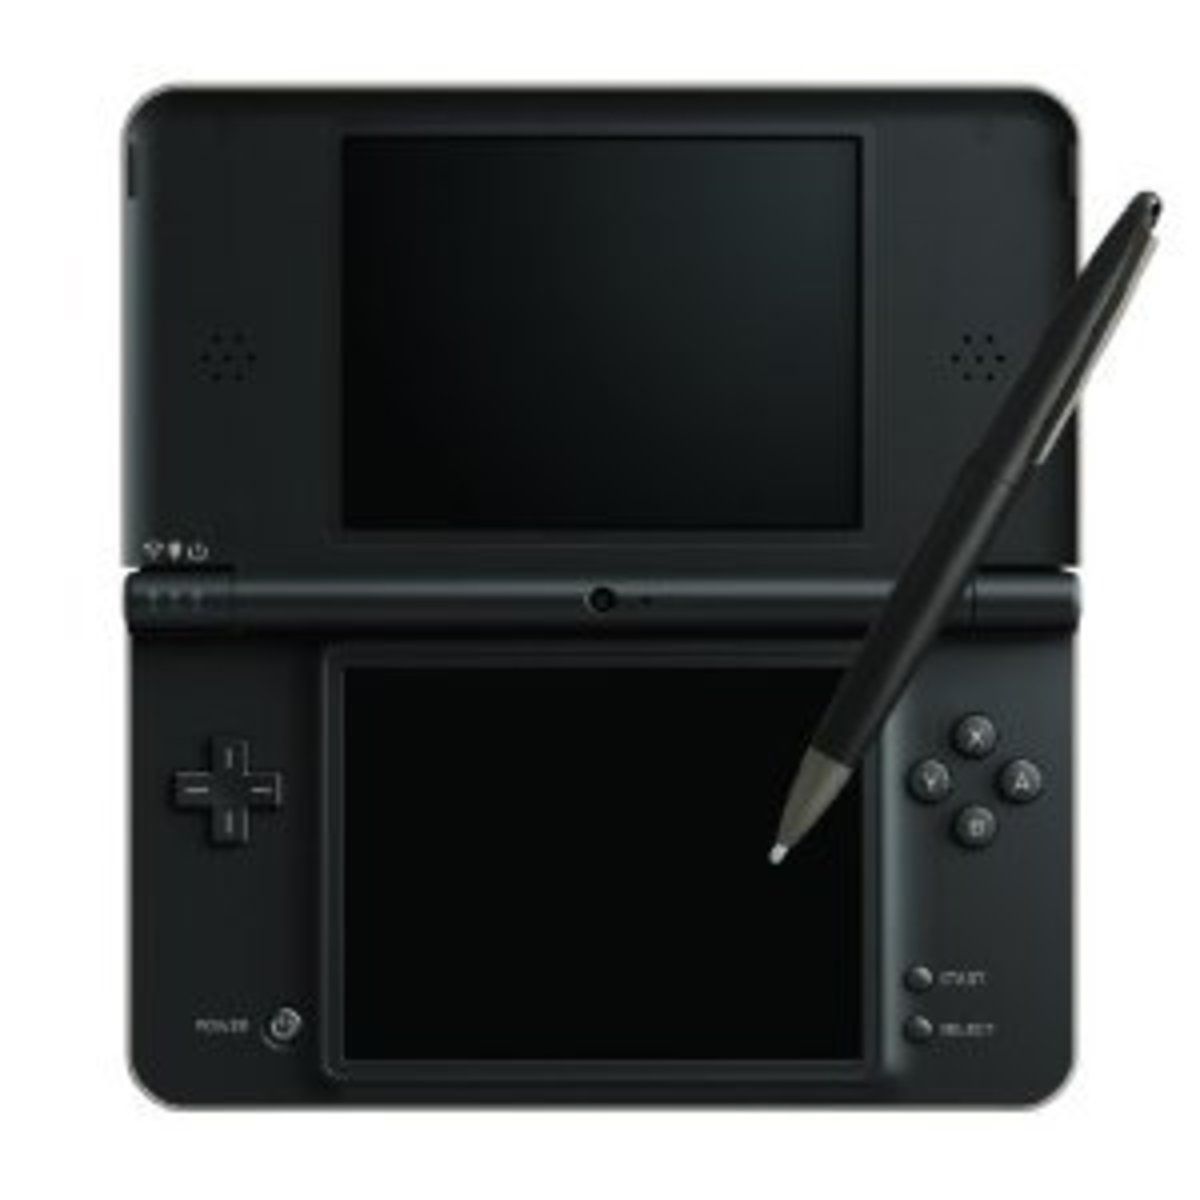 What is the Difference Between Nintendo DS Models?